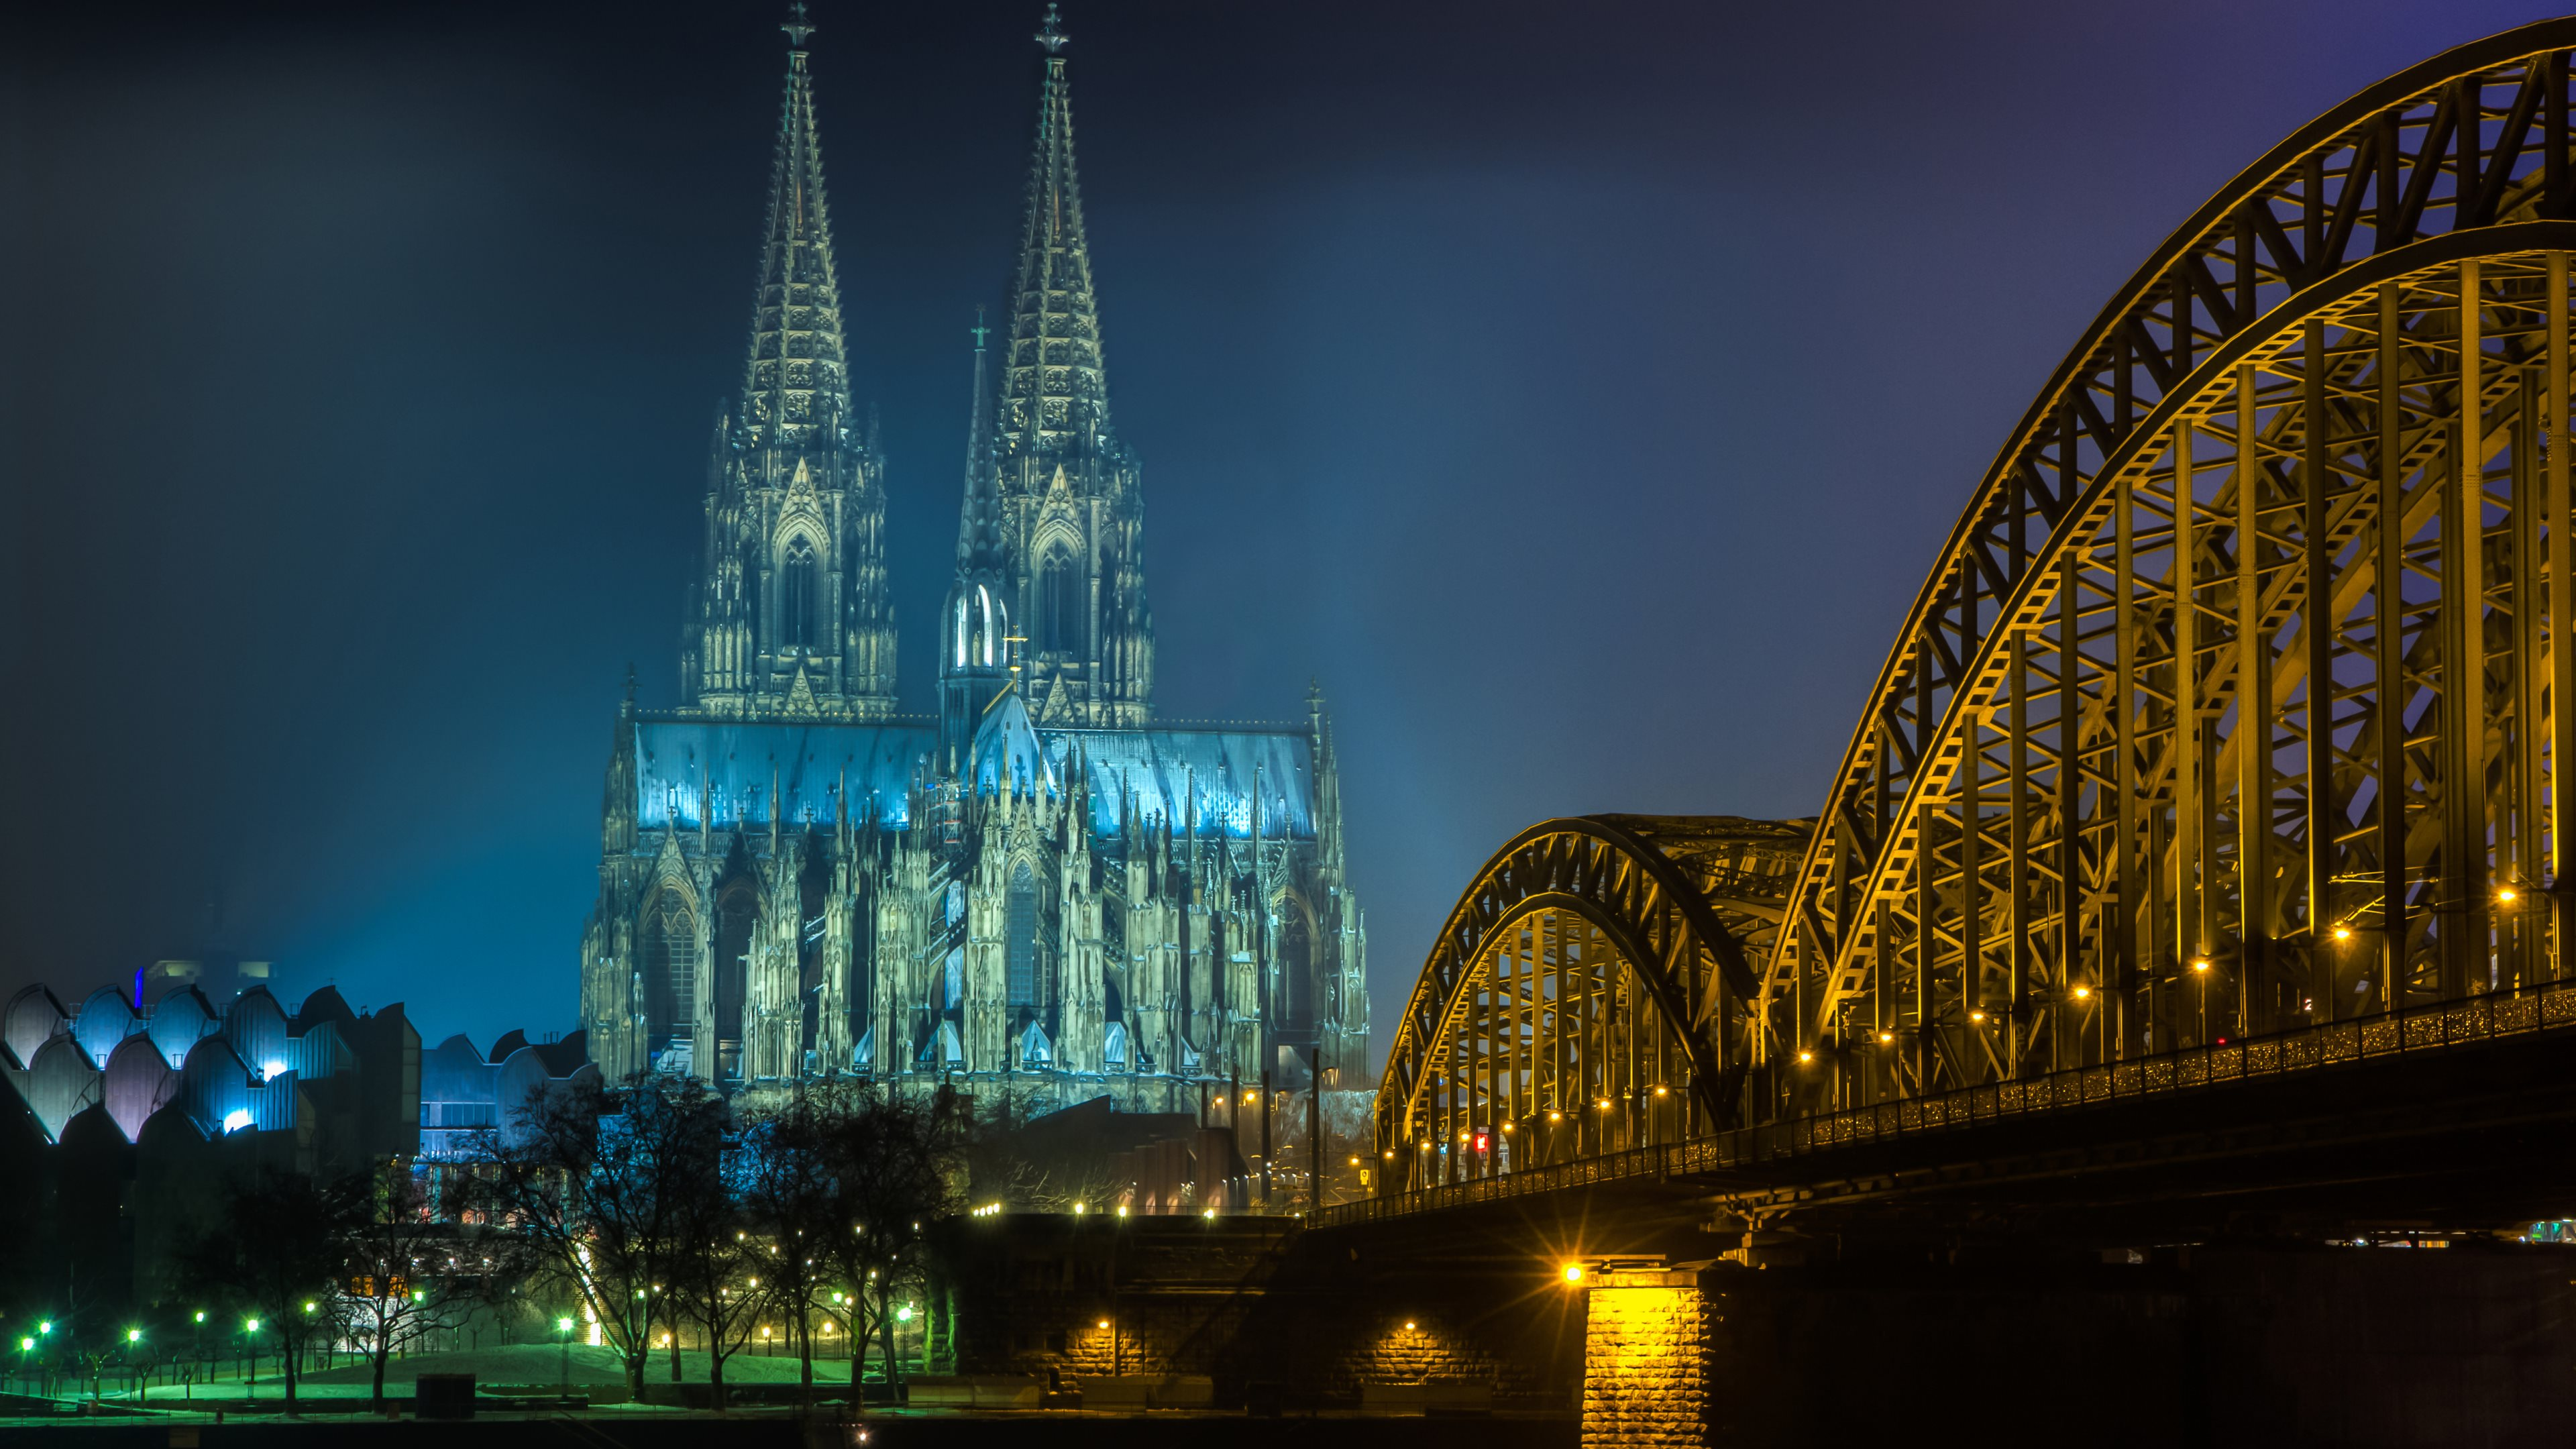 Cologne Cathedral 4k Ultra HD Wallpaper Background Image 3840x2160